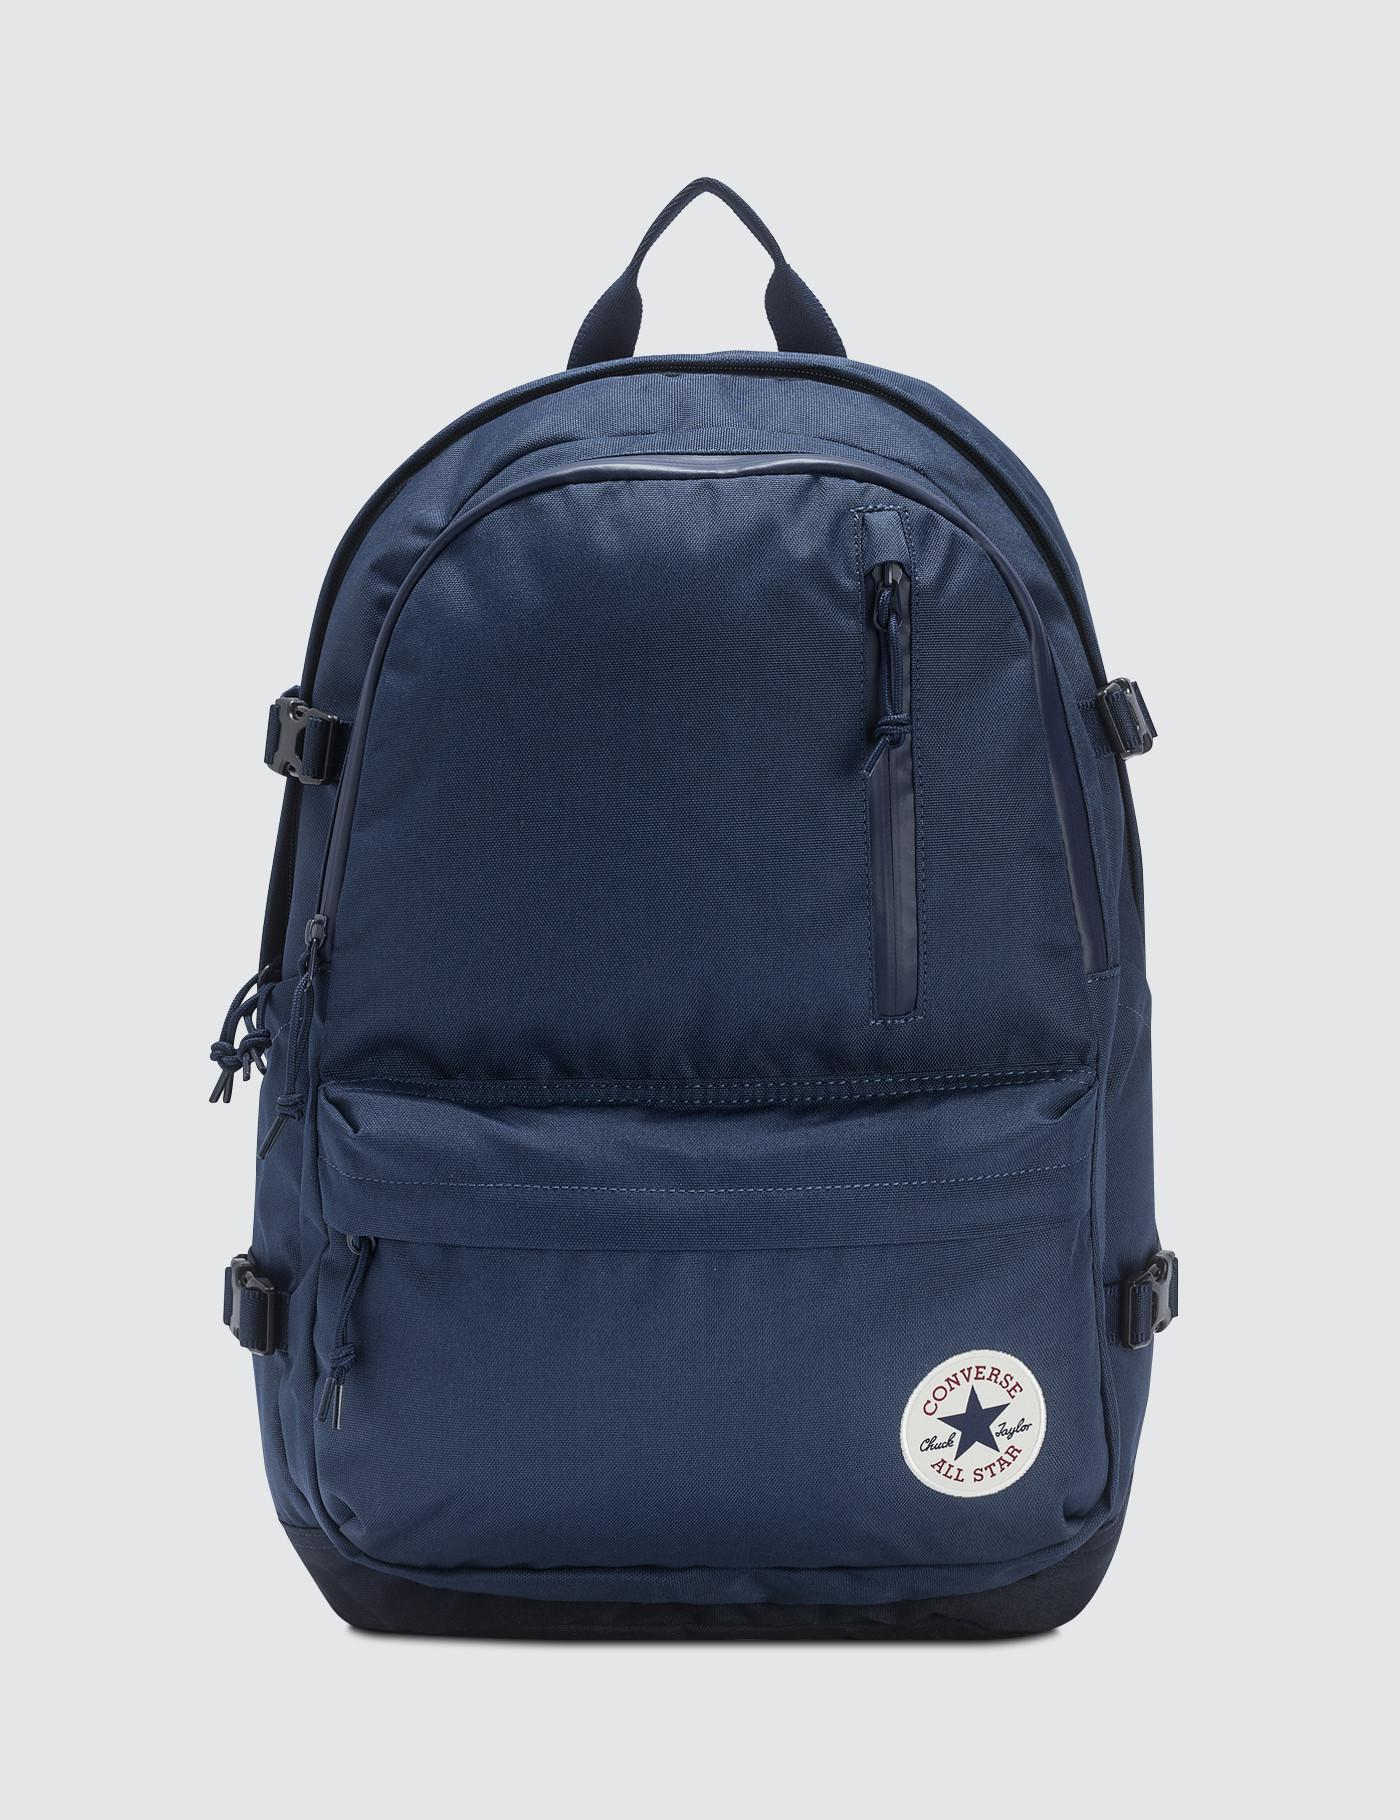 Converse Straight Edge Backpack Backpack in Blue for Men - Lyst 33c523d37ae36